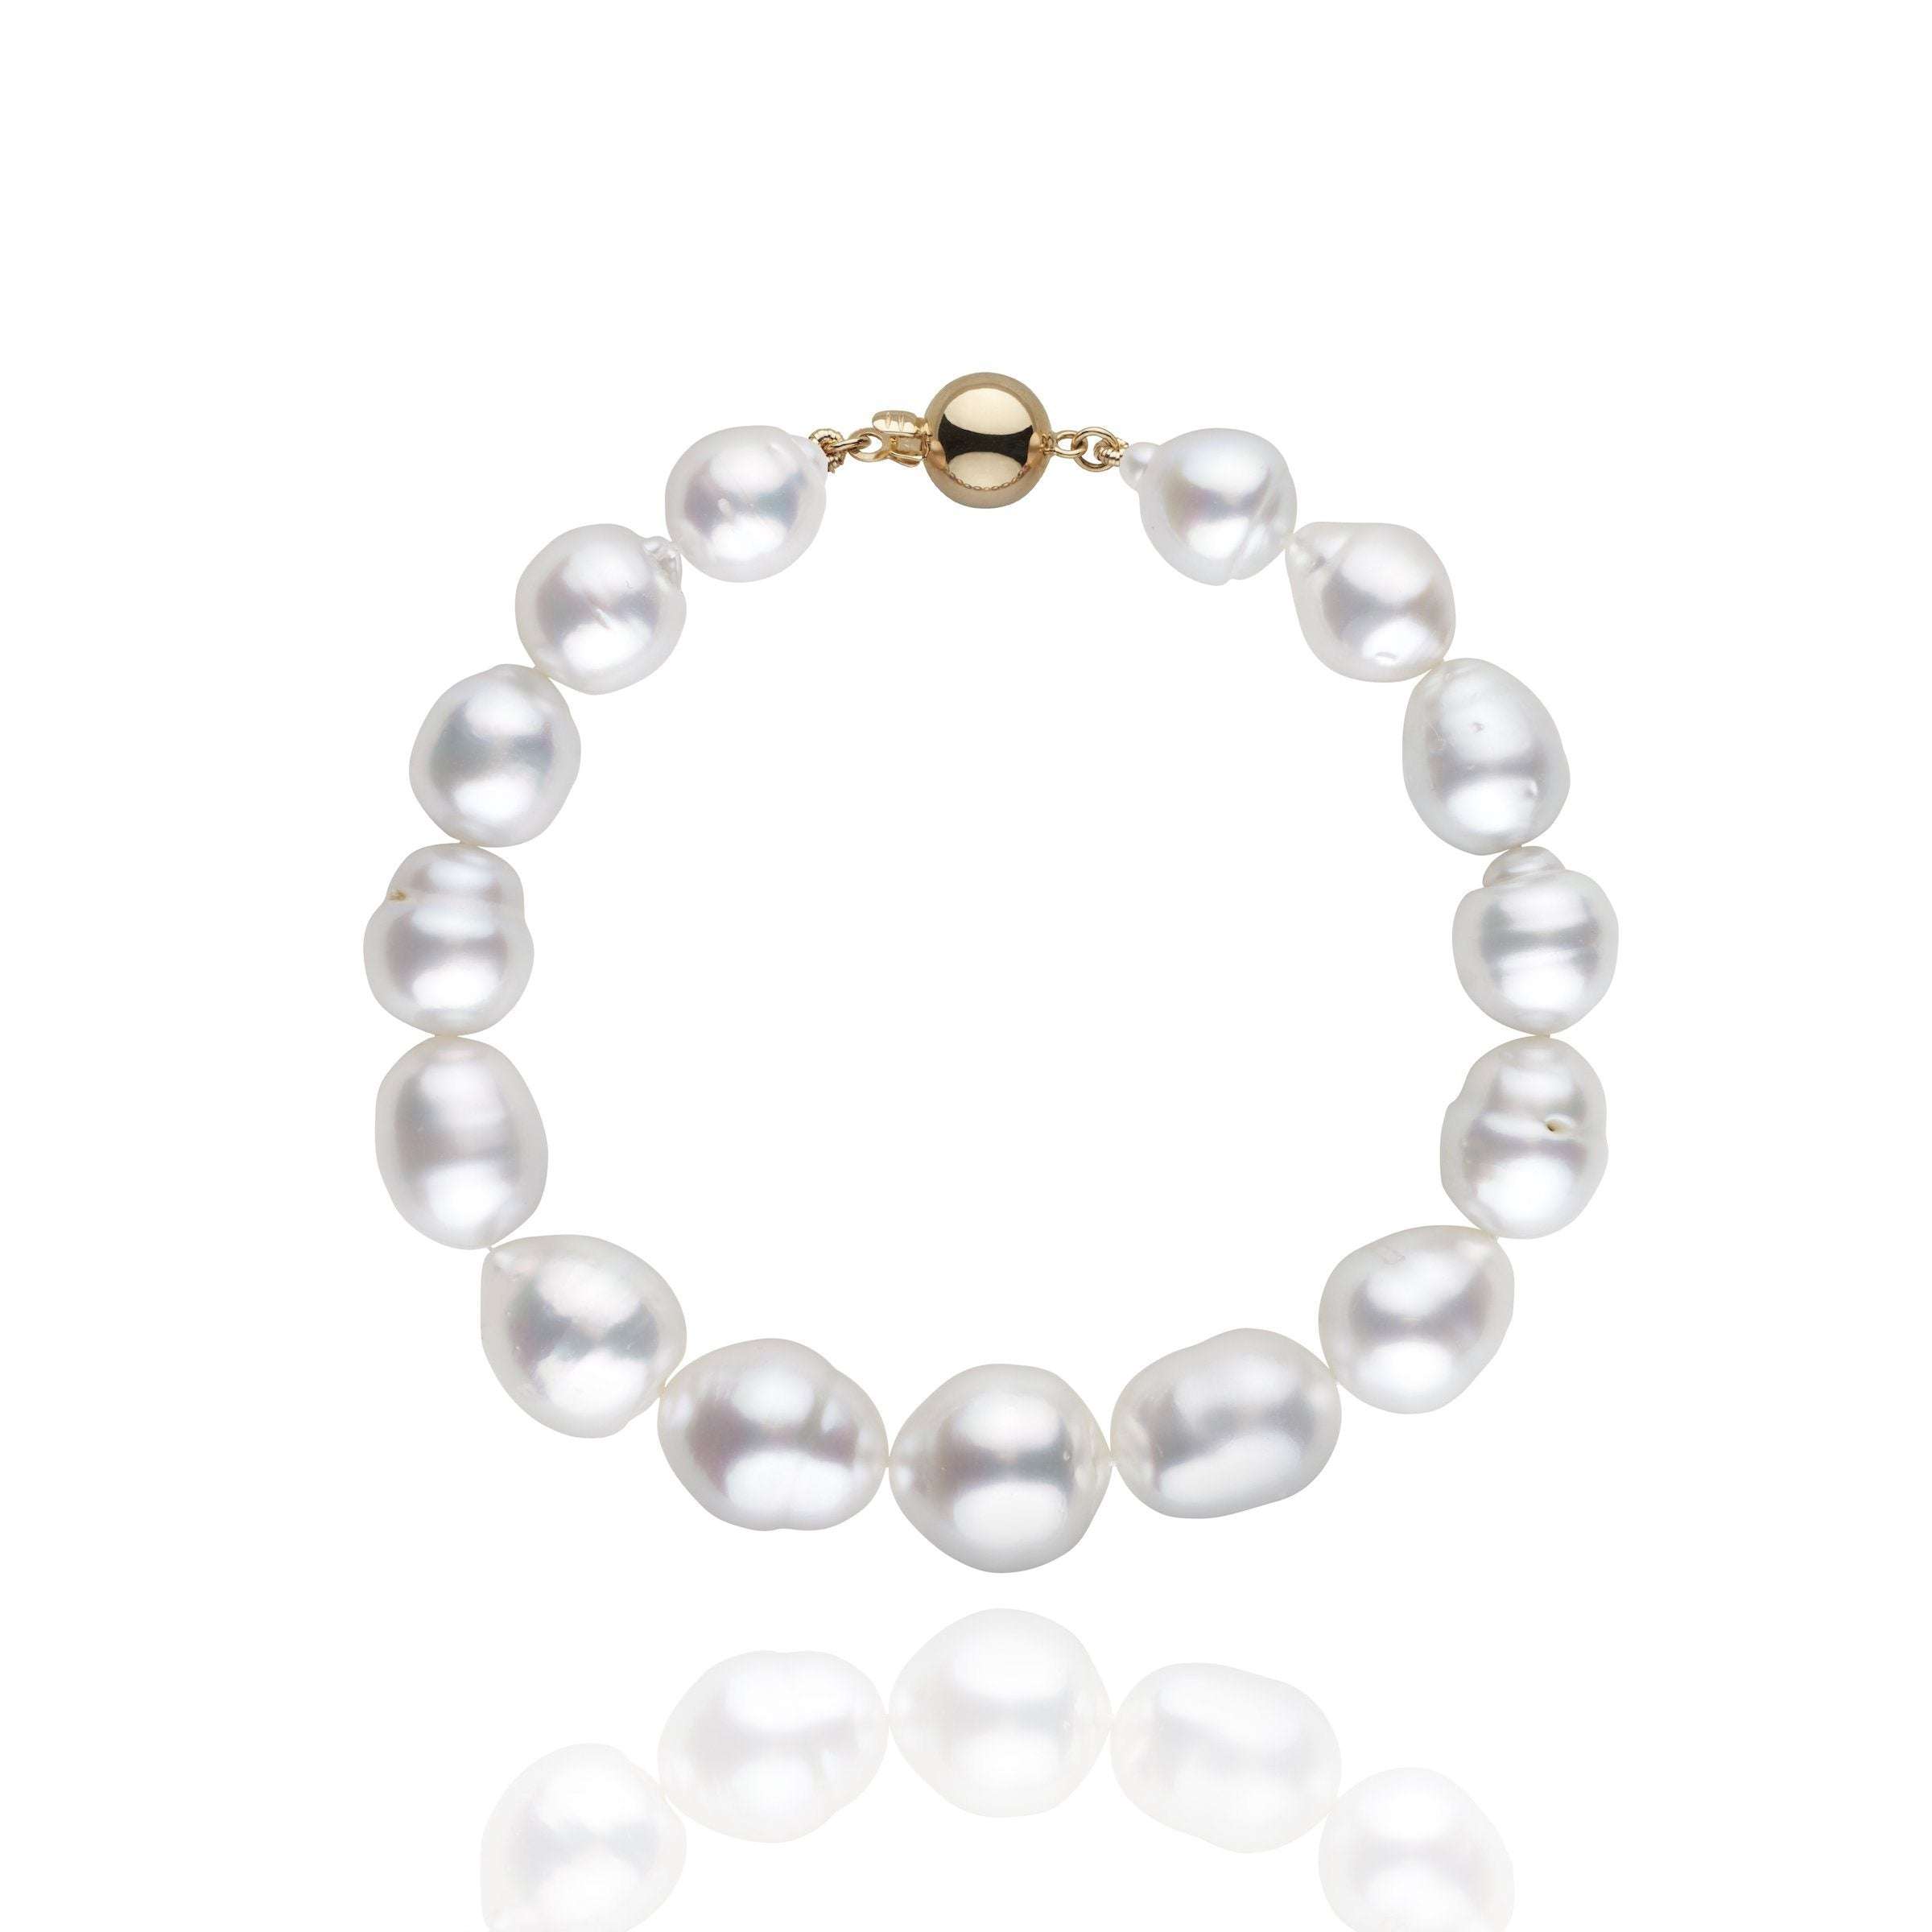 8.7-11.7 mm AA+/AAA White South Sea Baroque Bracelet